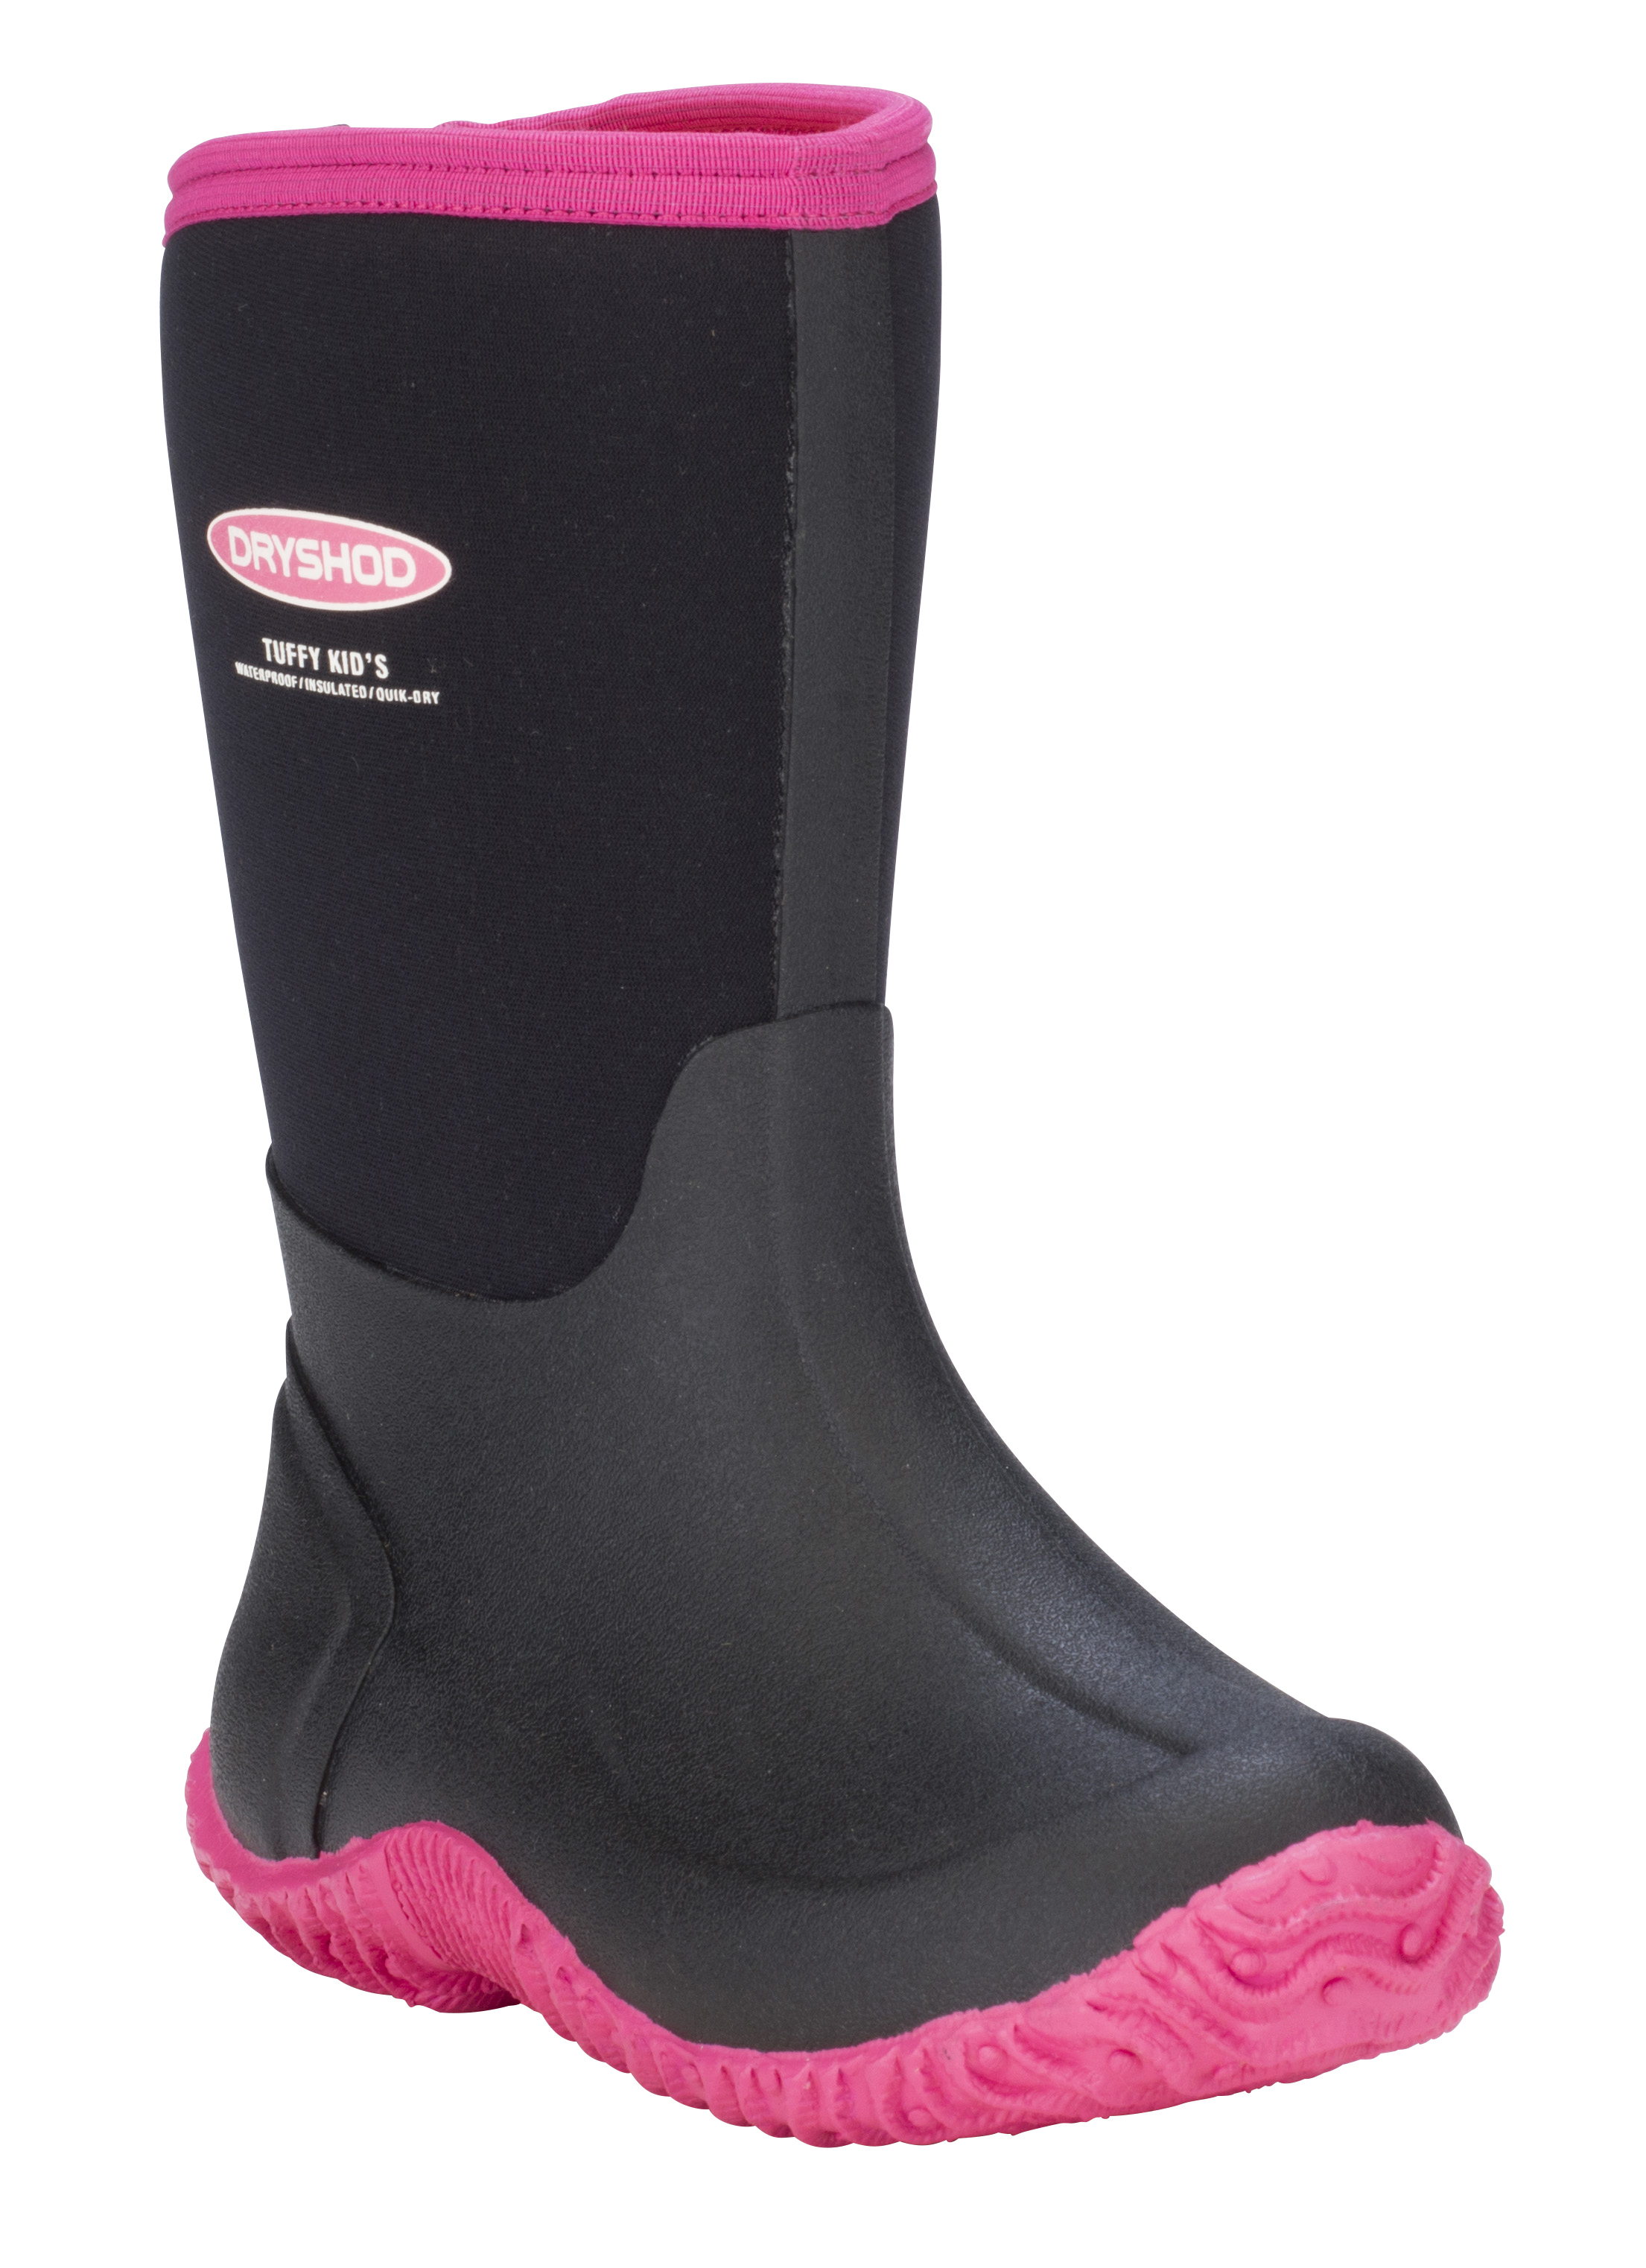 Dryshod Kids' Tuffy All Season Sport Boots - Mid/Hi Cut - Size Y4, Black/Pink